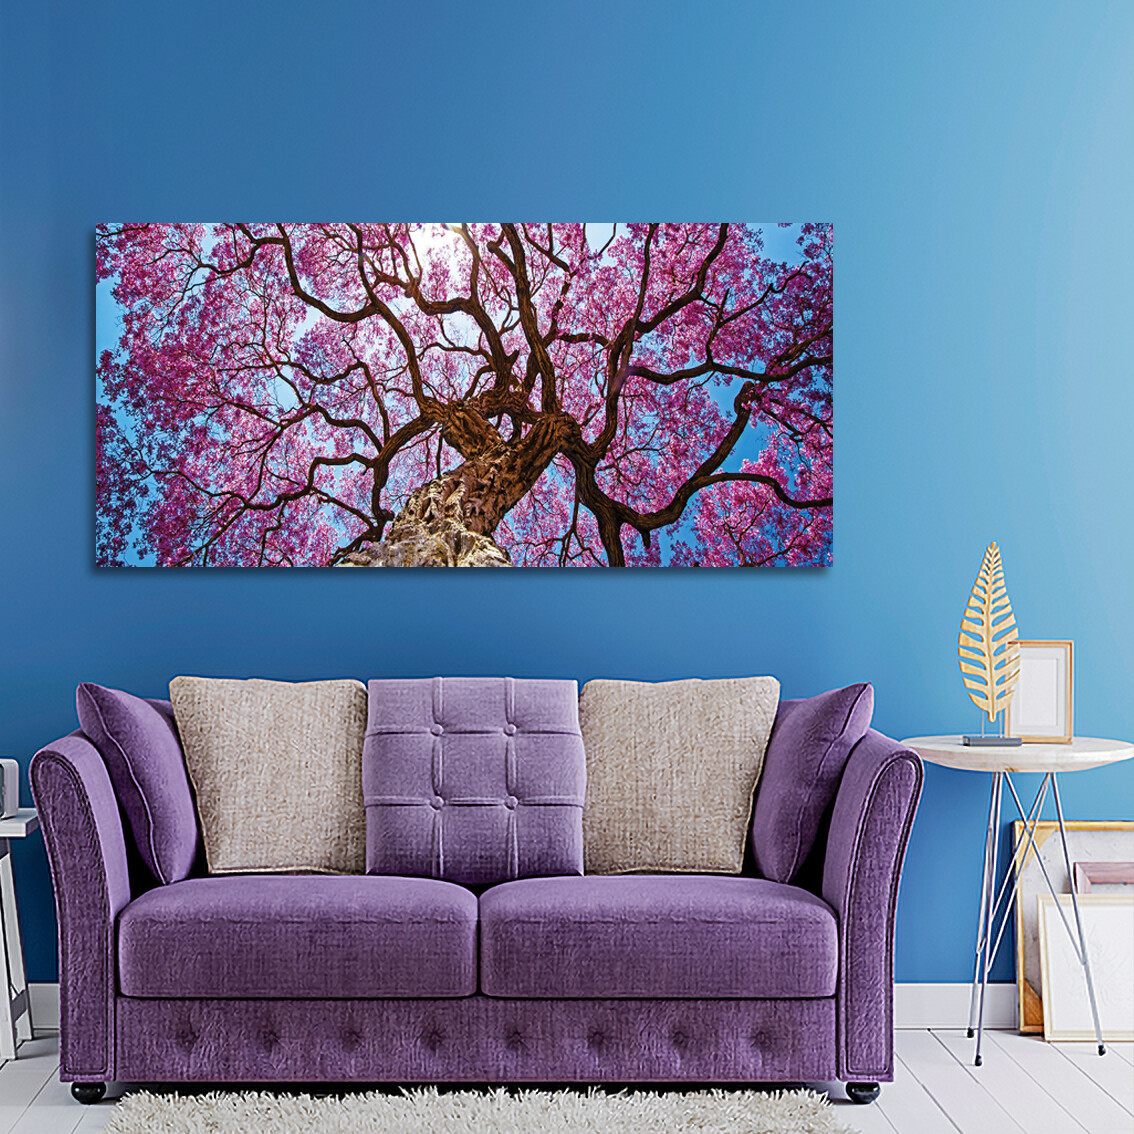 Pink Lapacho Tree  - Modern Luxury Wall art Printed on Acrylic Glass - Frameless and Ready to Hang